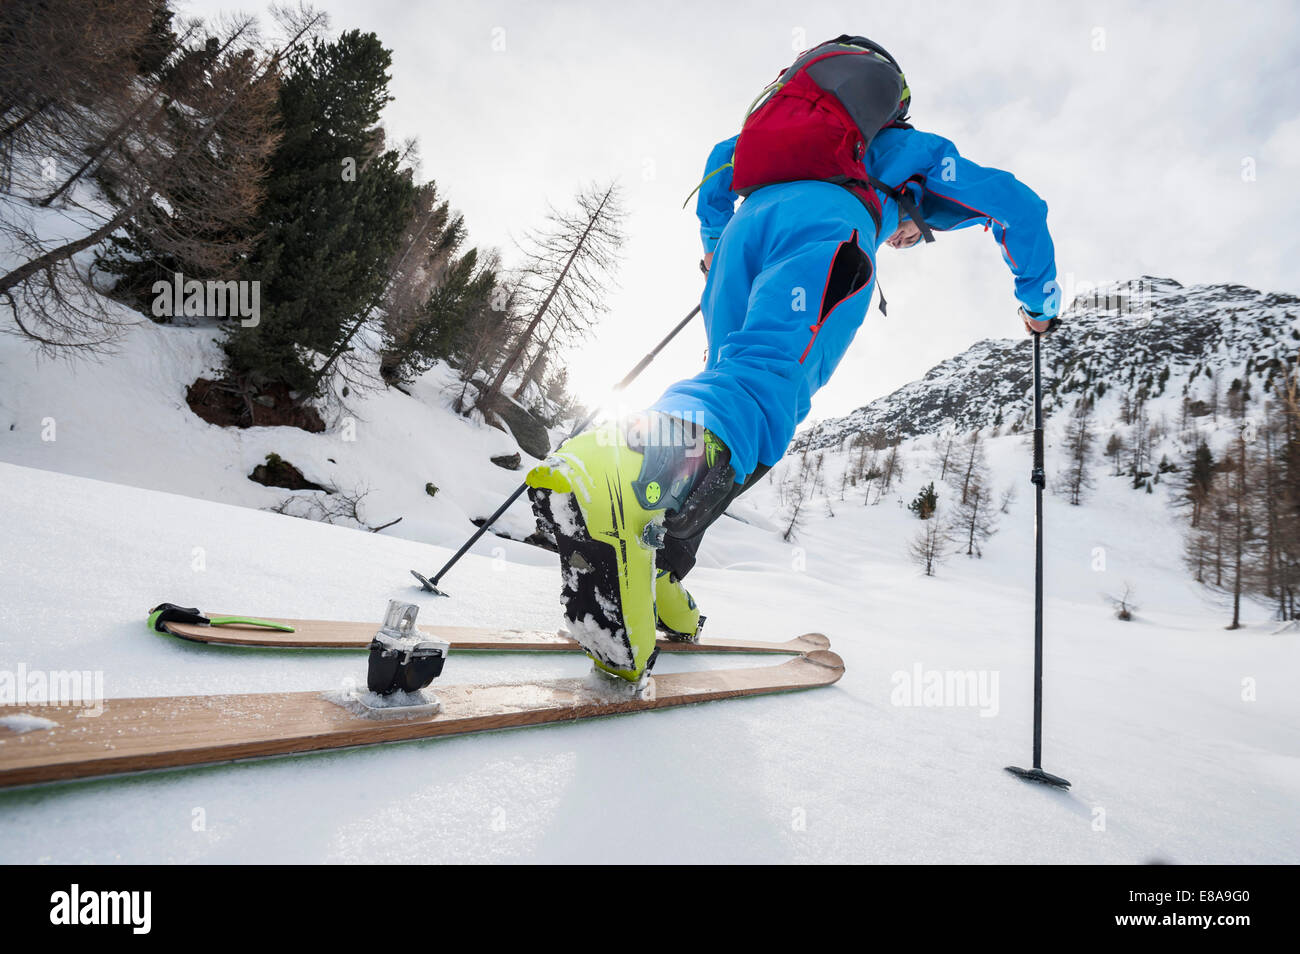 Detail close-up man cross-country skiing - Stock Image